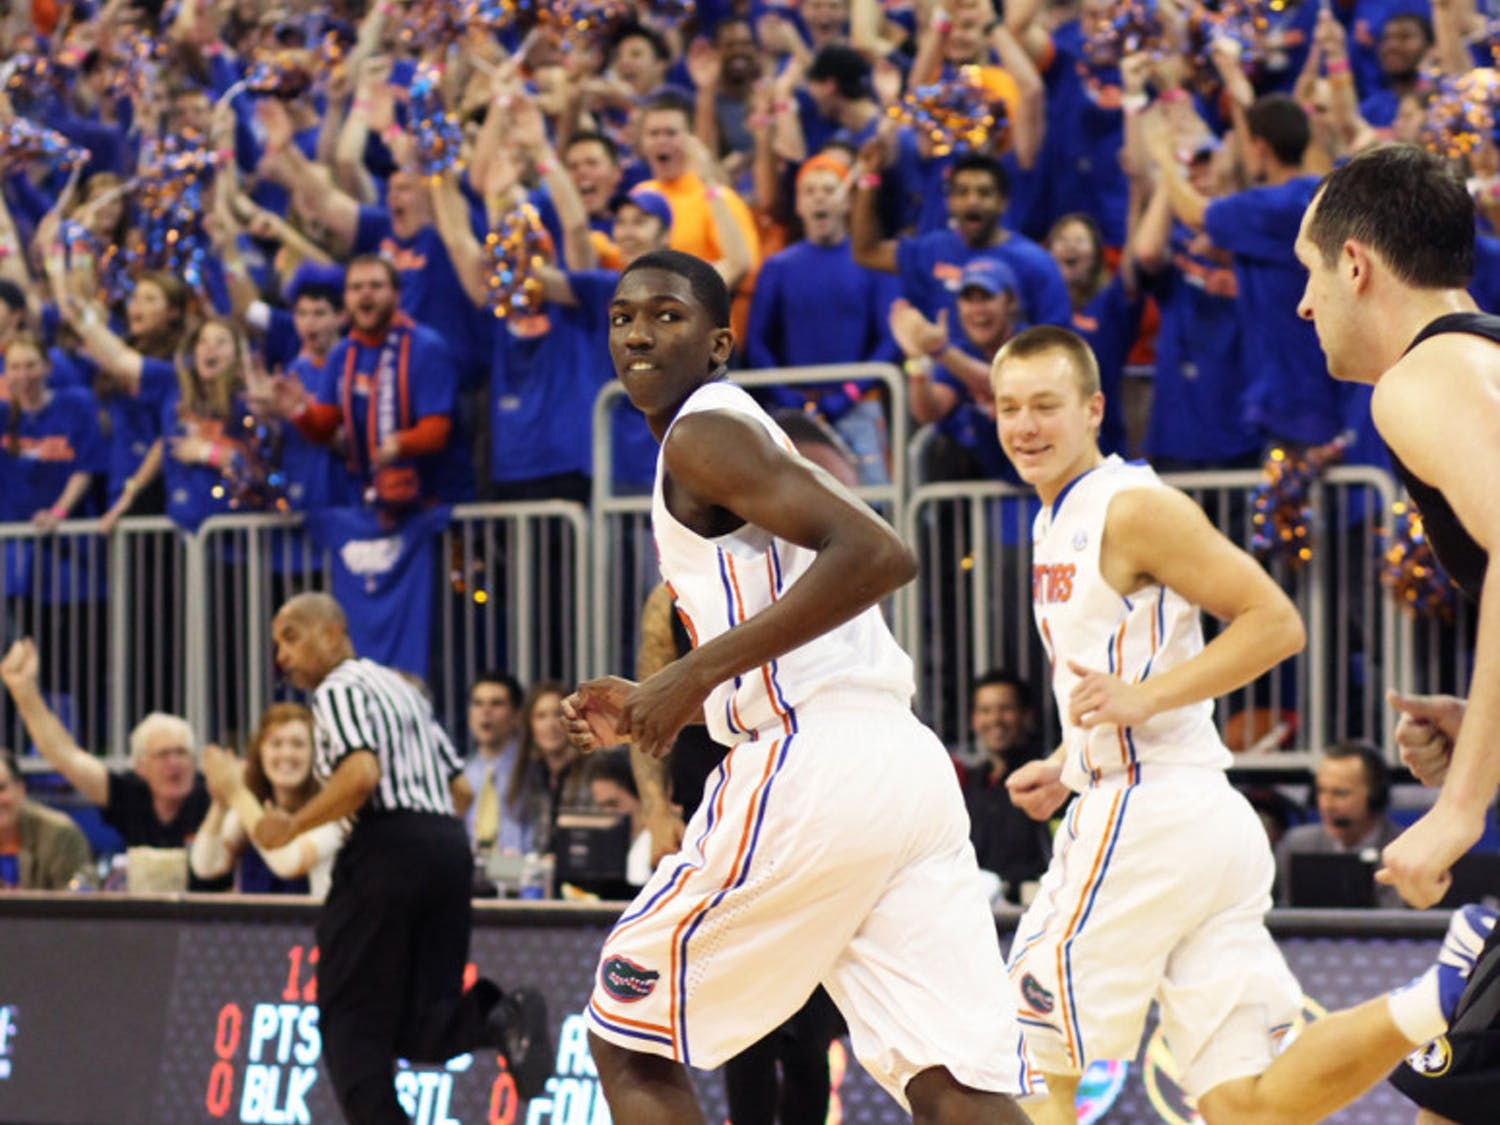 Freshman DeVon Walker runs down the court during Florida's 83-52 win against Missouri on Jan. 19 in the O'Connell Center. Walker announced Monday he will return to Florida after asking for his release to transfer on May 6.